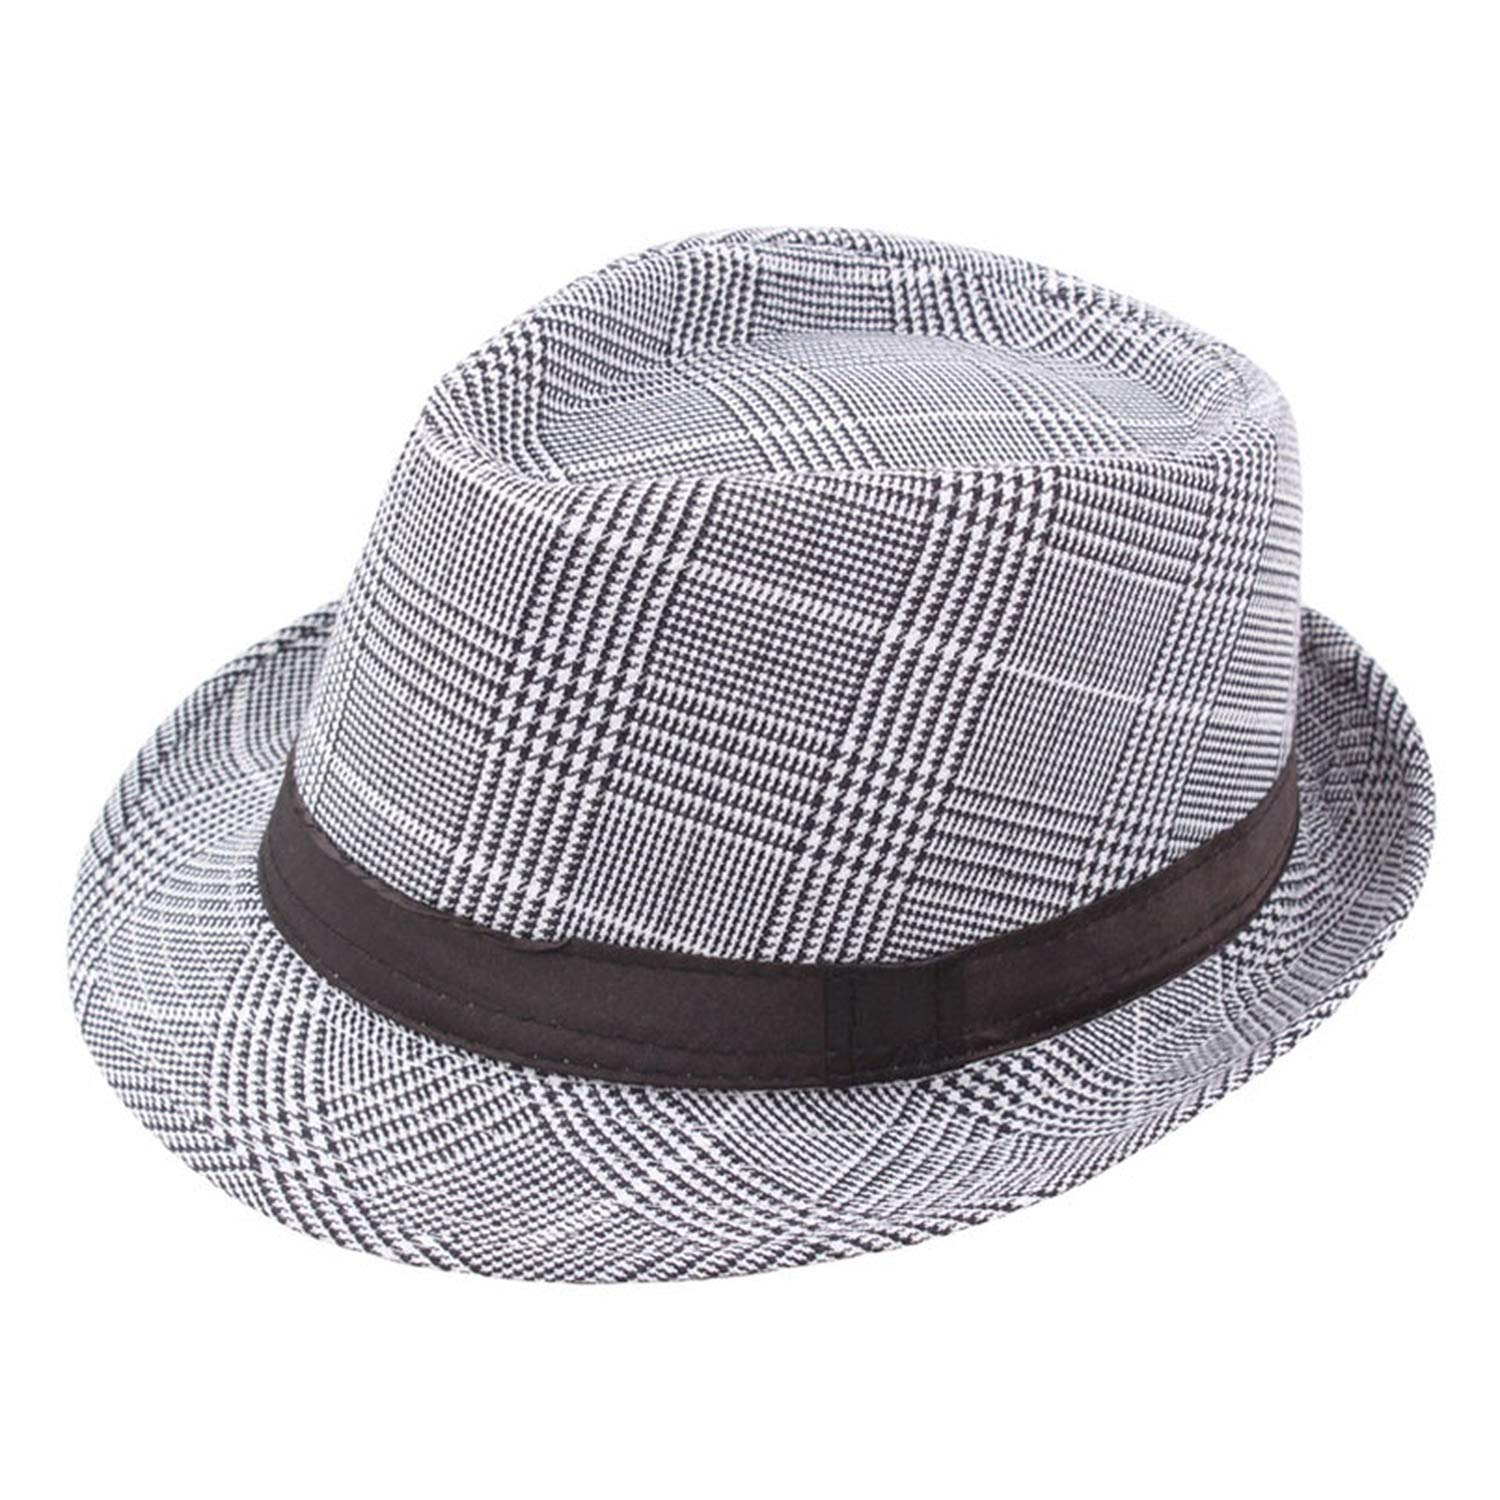 2019 England Retro Mens Top Jazz Plaid Hat Spring Summer Bowler Hats Cap Classic Version Hats